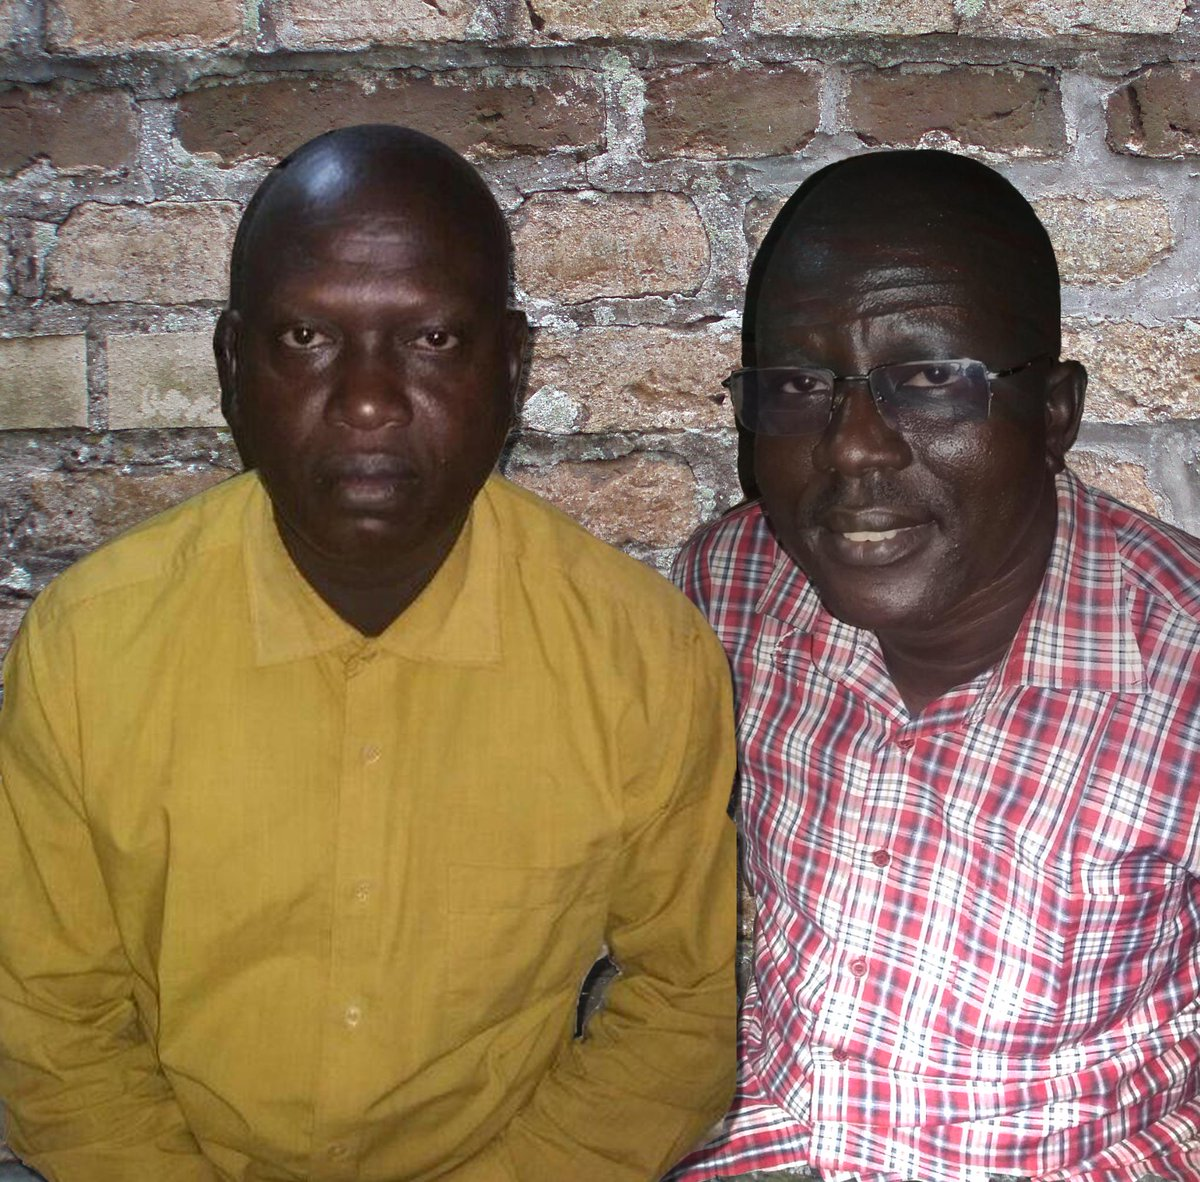 BREAKING: Sudanese pastors Rev Yat Michael and Rev Peter Reith have been freed. More details to follow. #setthemfree http://t.co/y1UCmbKOuh